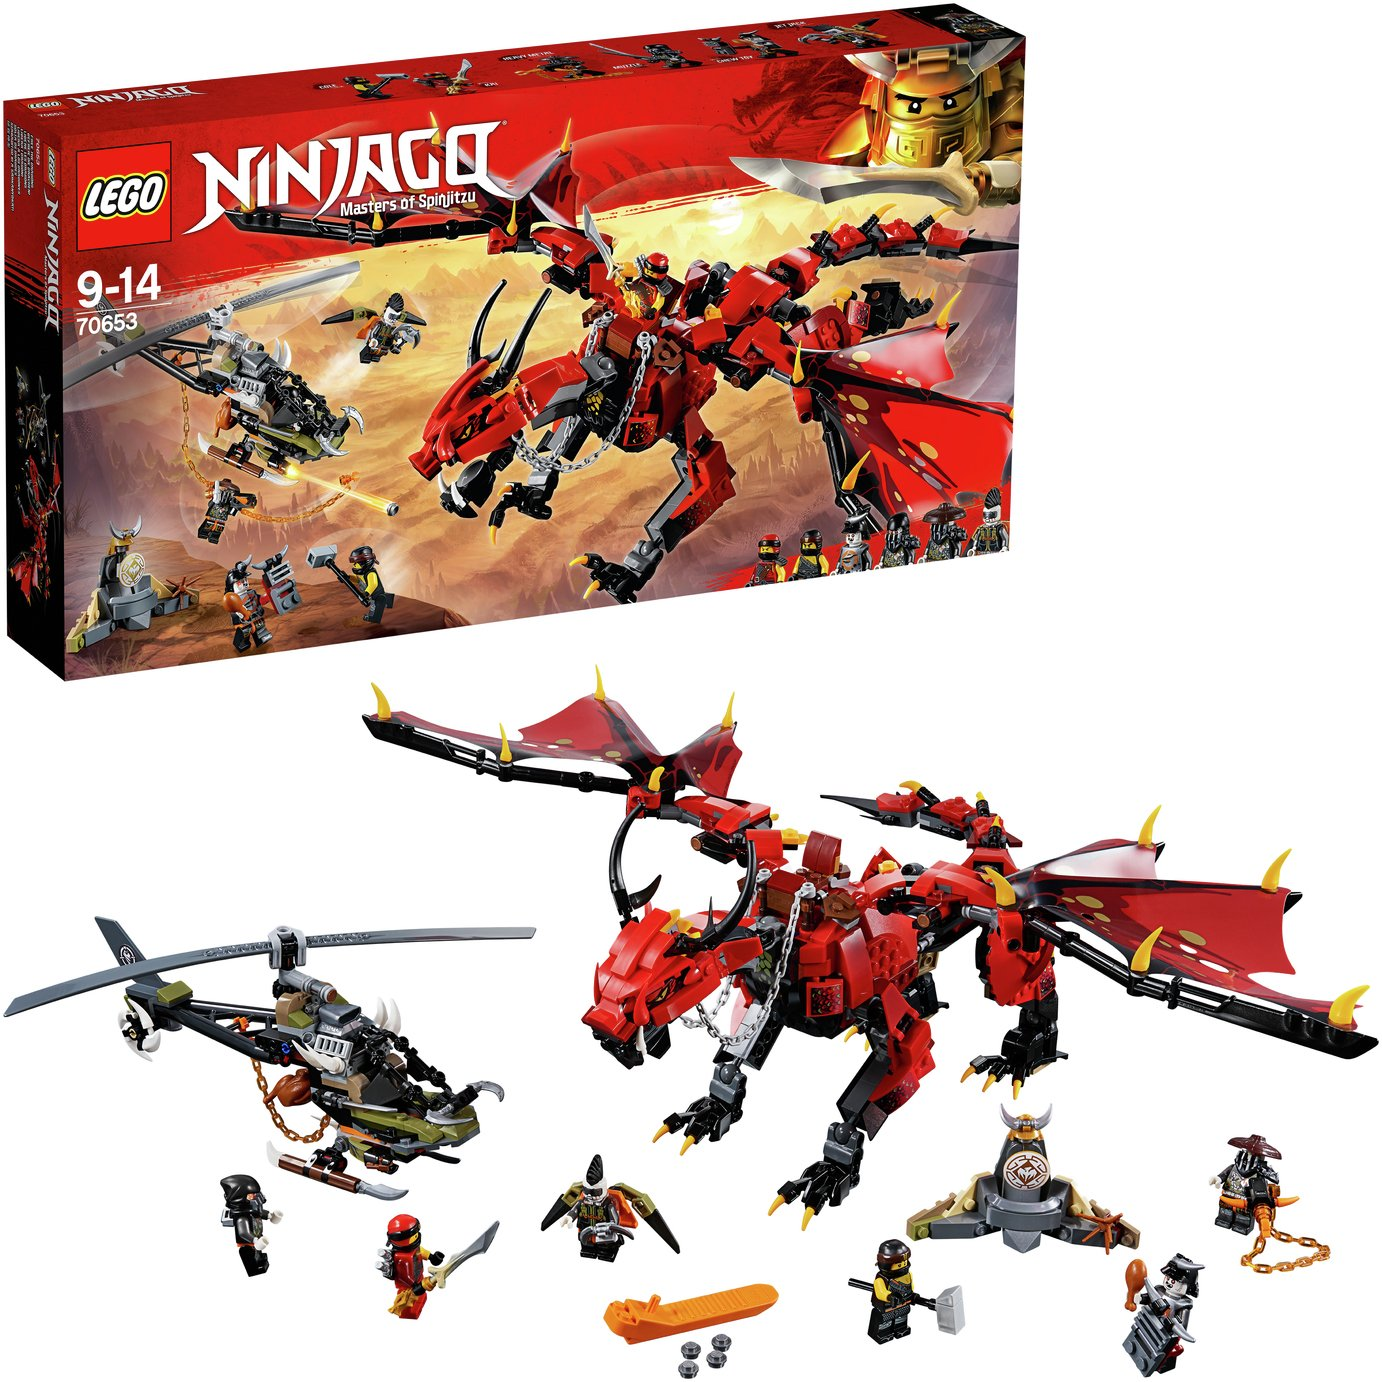 LEGO Ninjago Firstbourne Dragon Toy & Helicopter Set - 70653